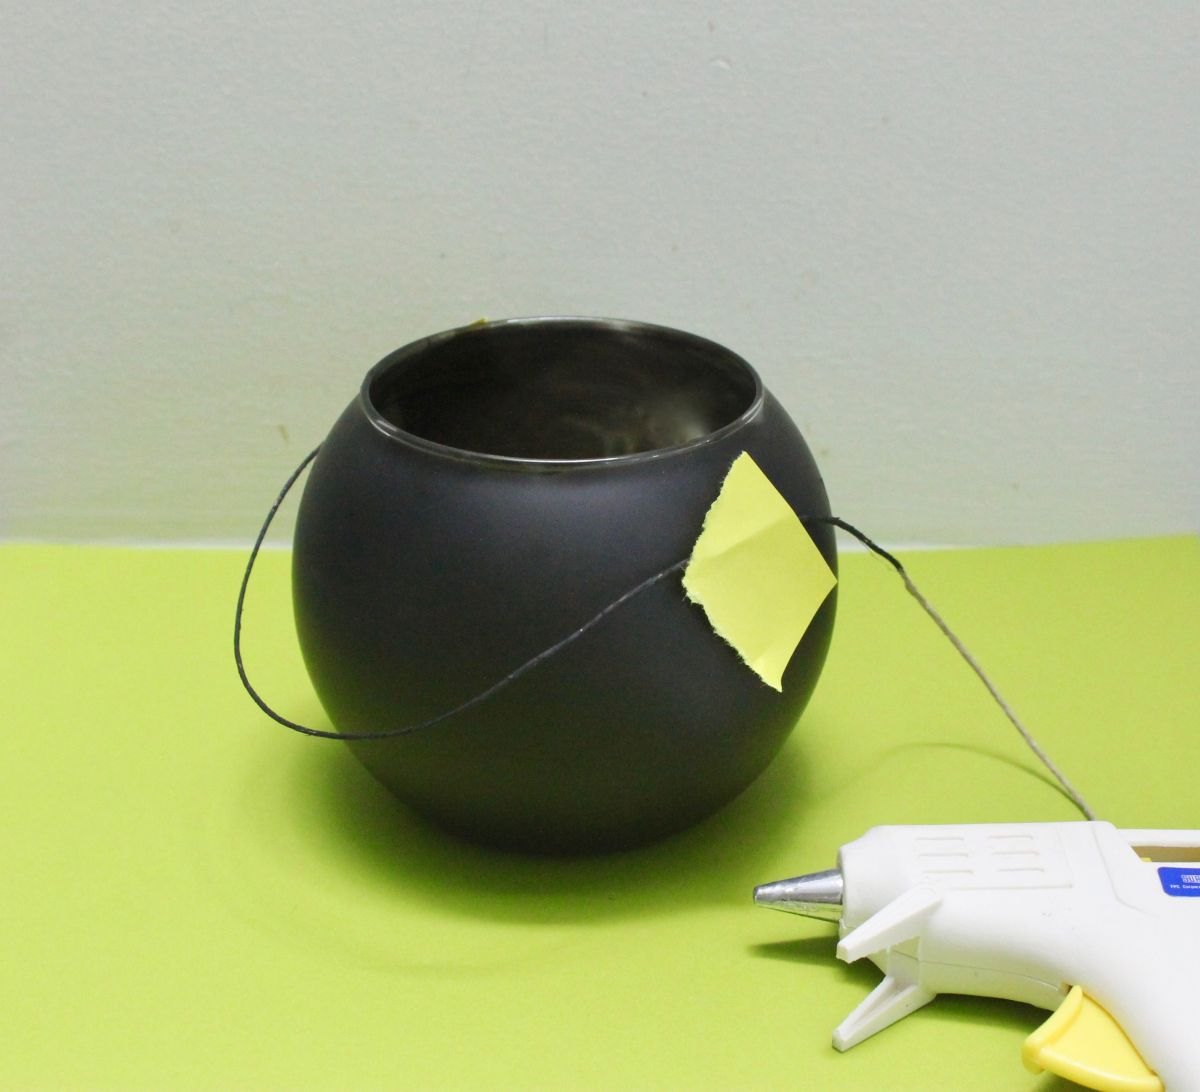 How to make the Cauldron candle glue